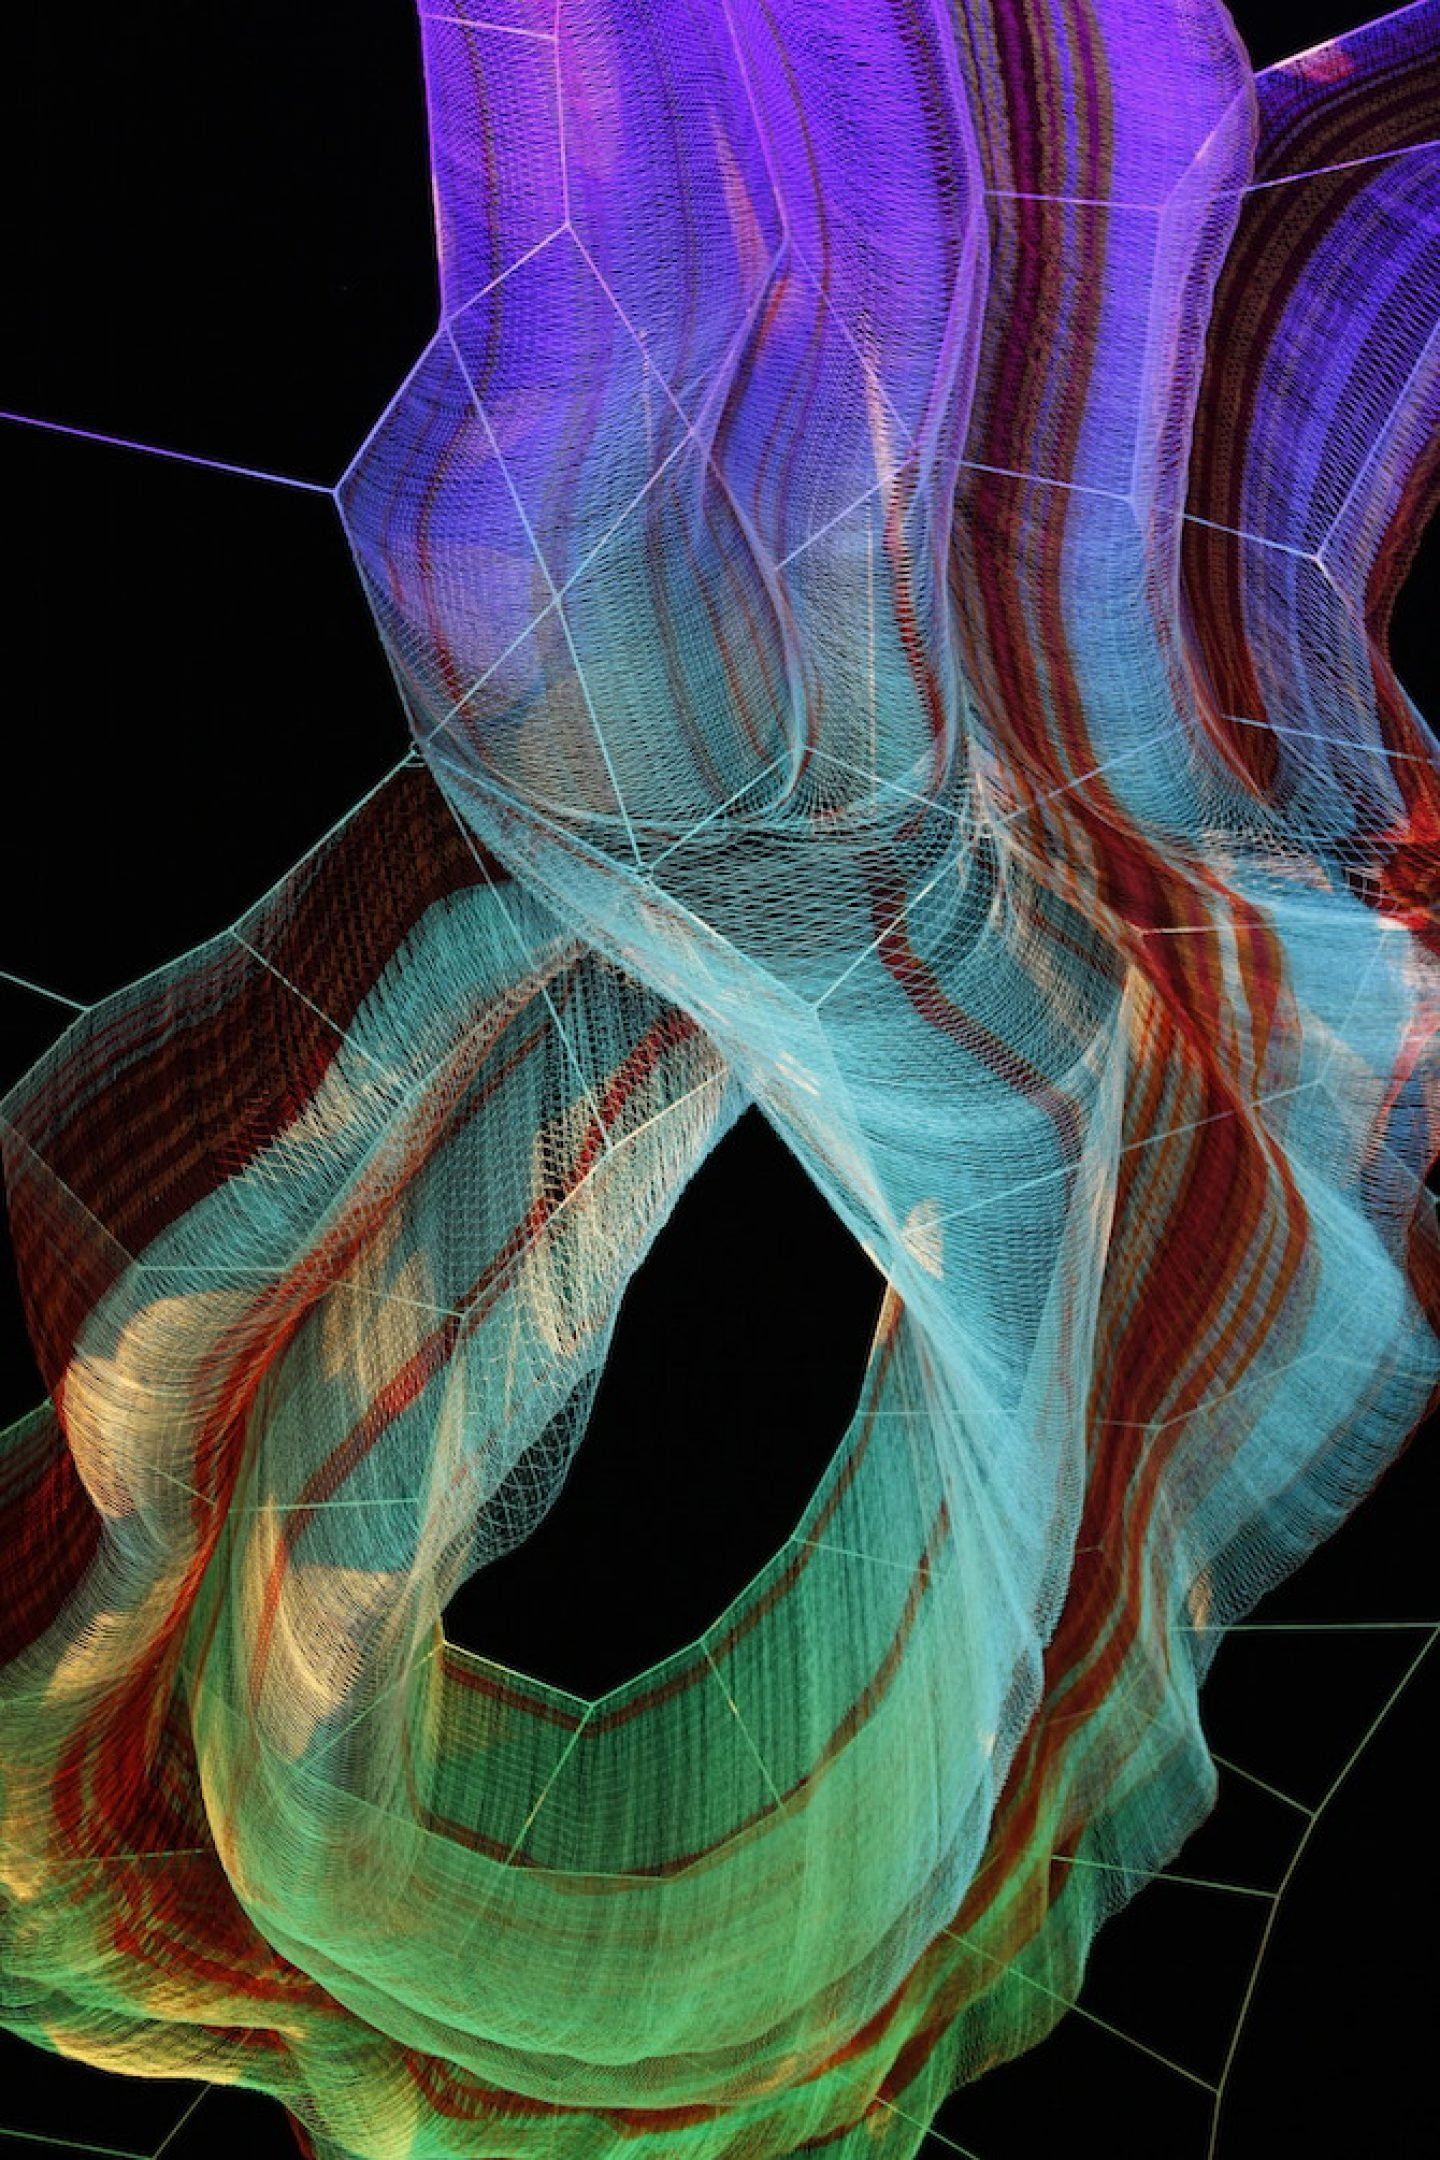 StudioEchelman_London_1246_PhotoEmaPeter